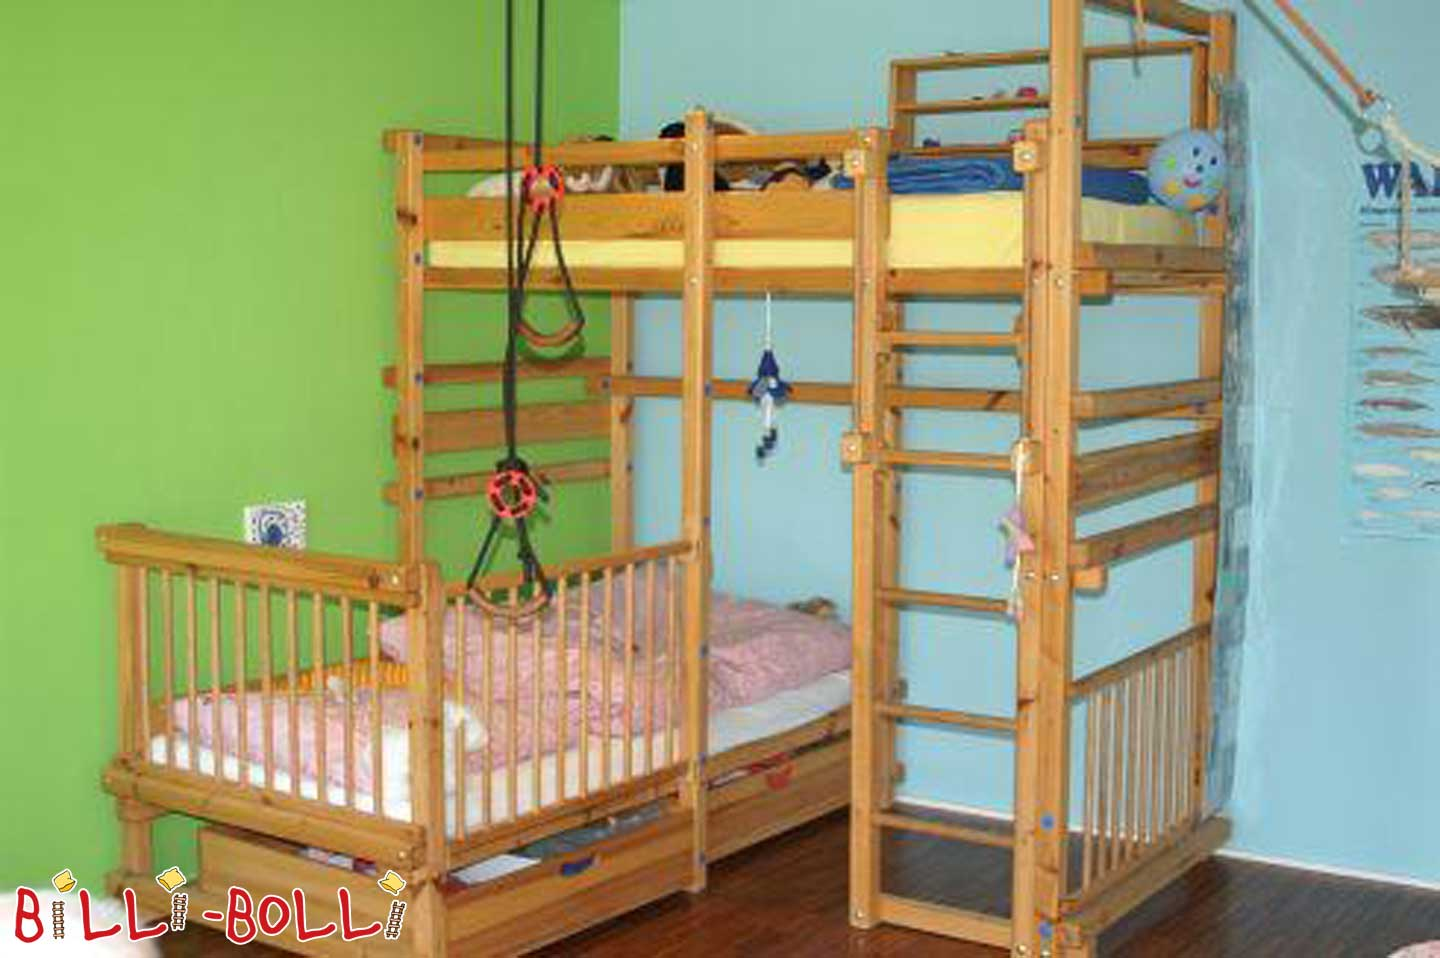 Billi-Bolli bed over corner (second hand baby crib)